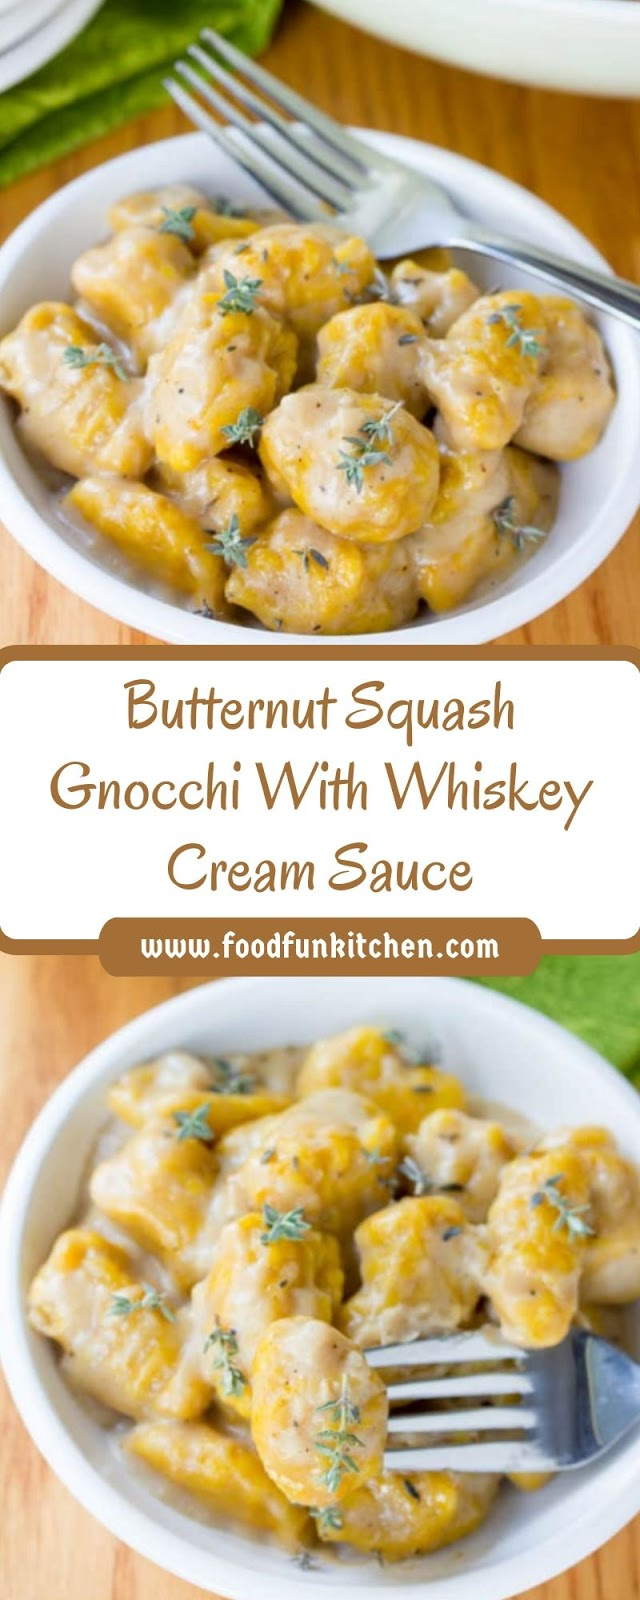 A well worth-while exertions of love, AKA Butternut Squash Gnocchi with Whiskey Cream Sauce.